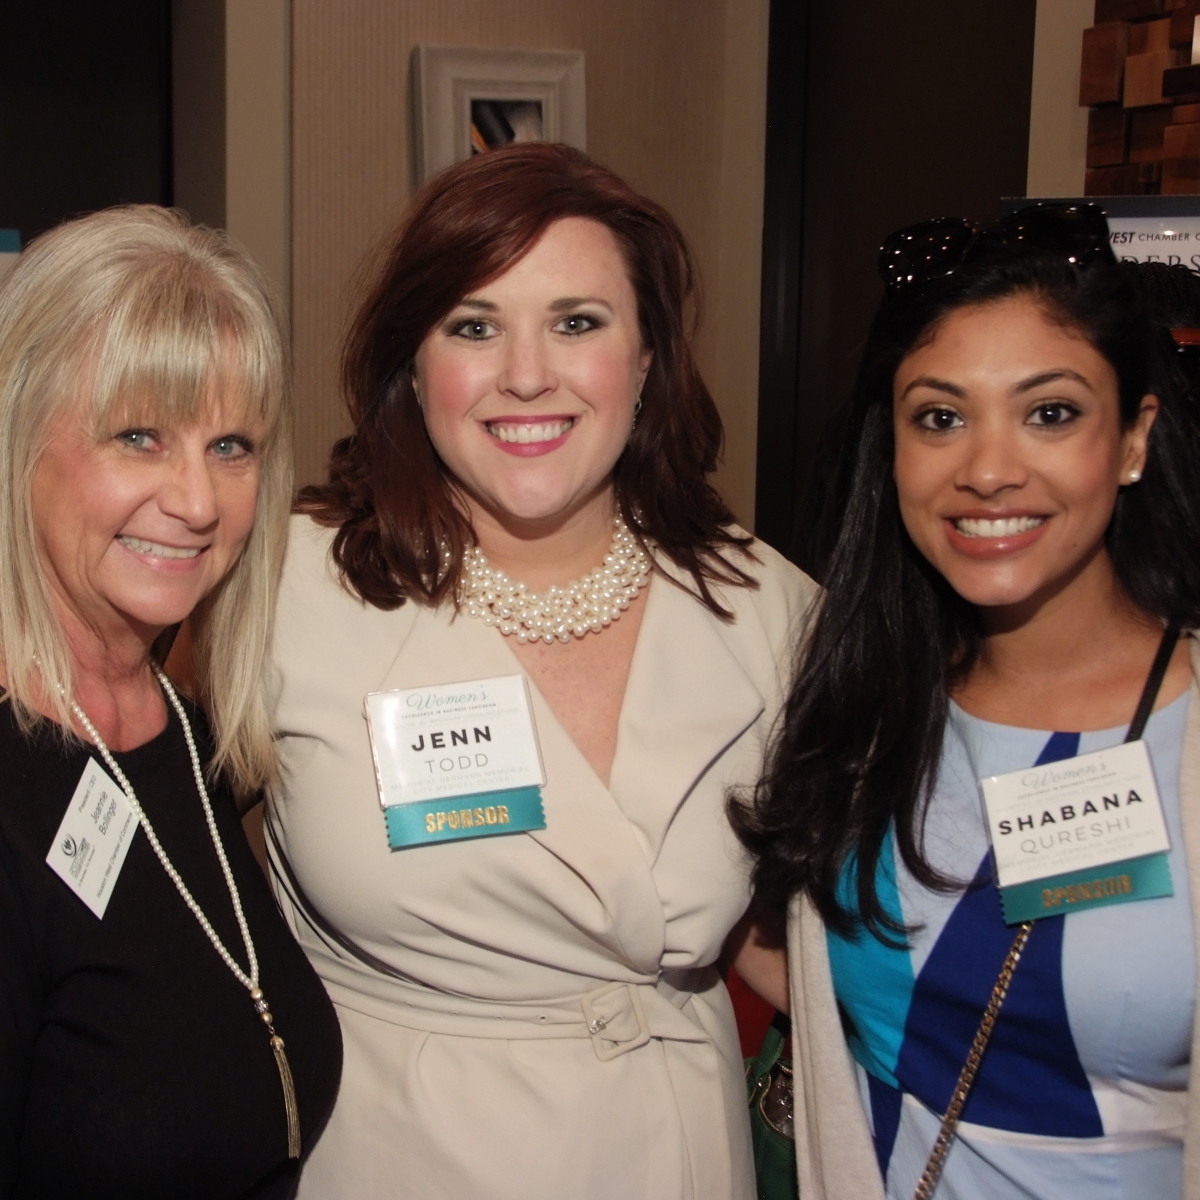 Houston, Women's Excellence in Business Series Luncheon, May 2016, Jeannie Bollinger, Jenn Todd, Shabana Quershi